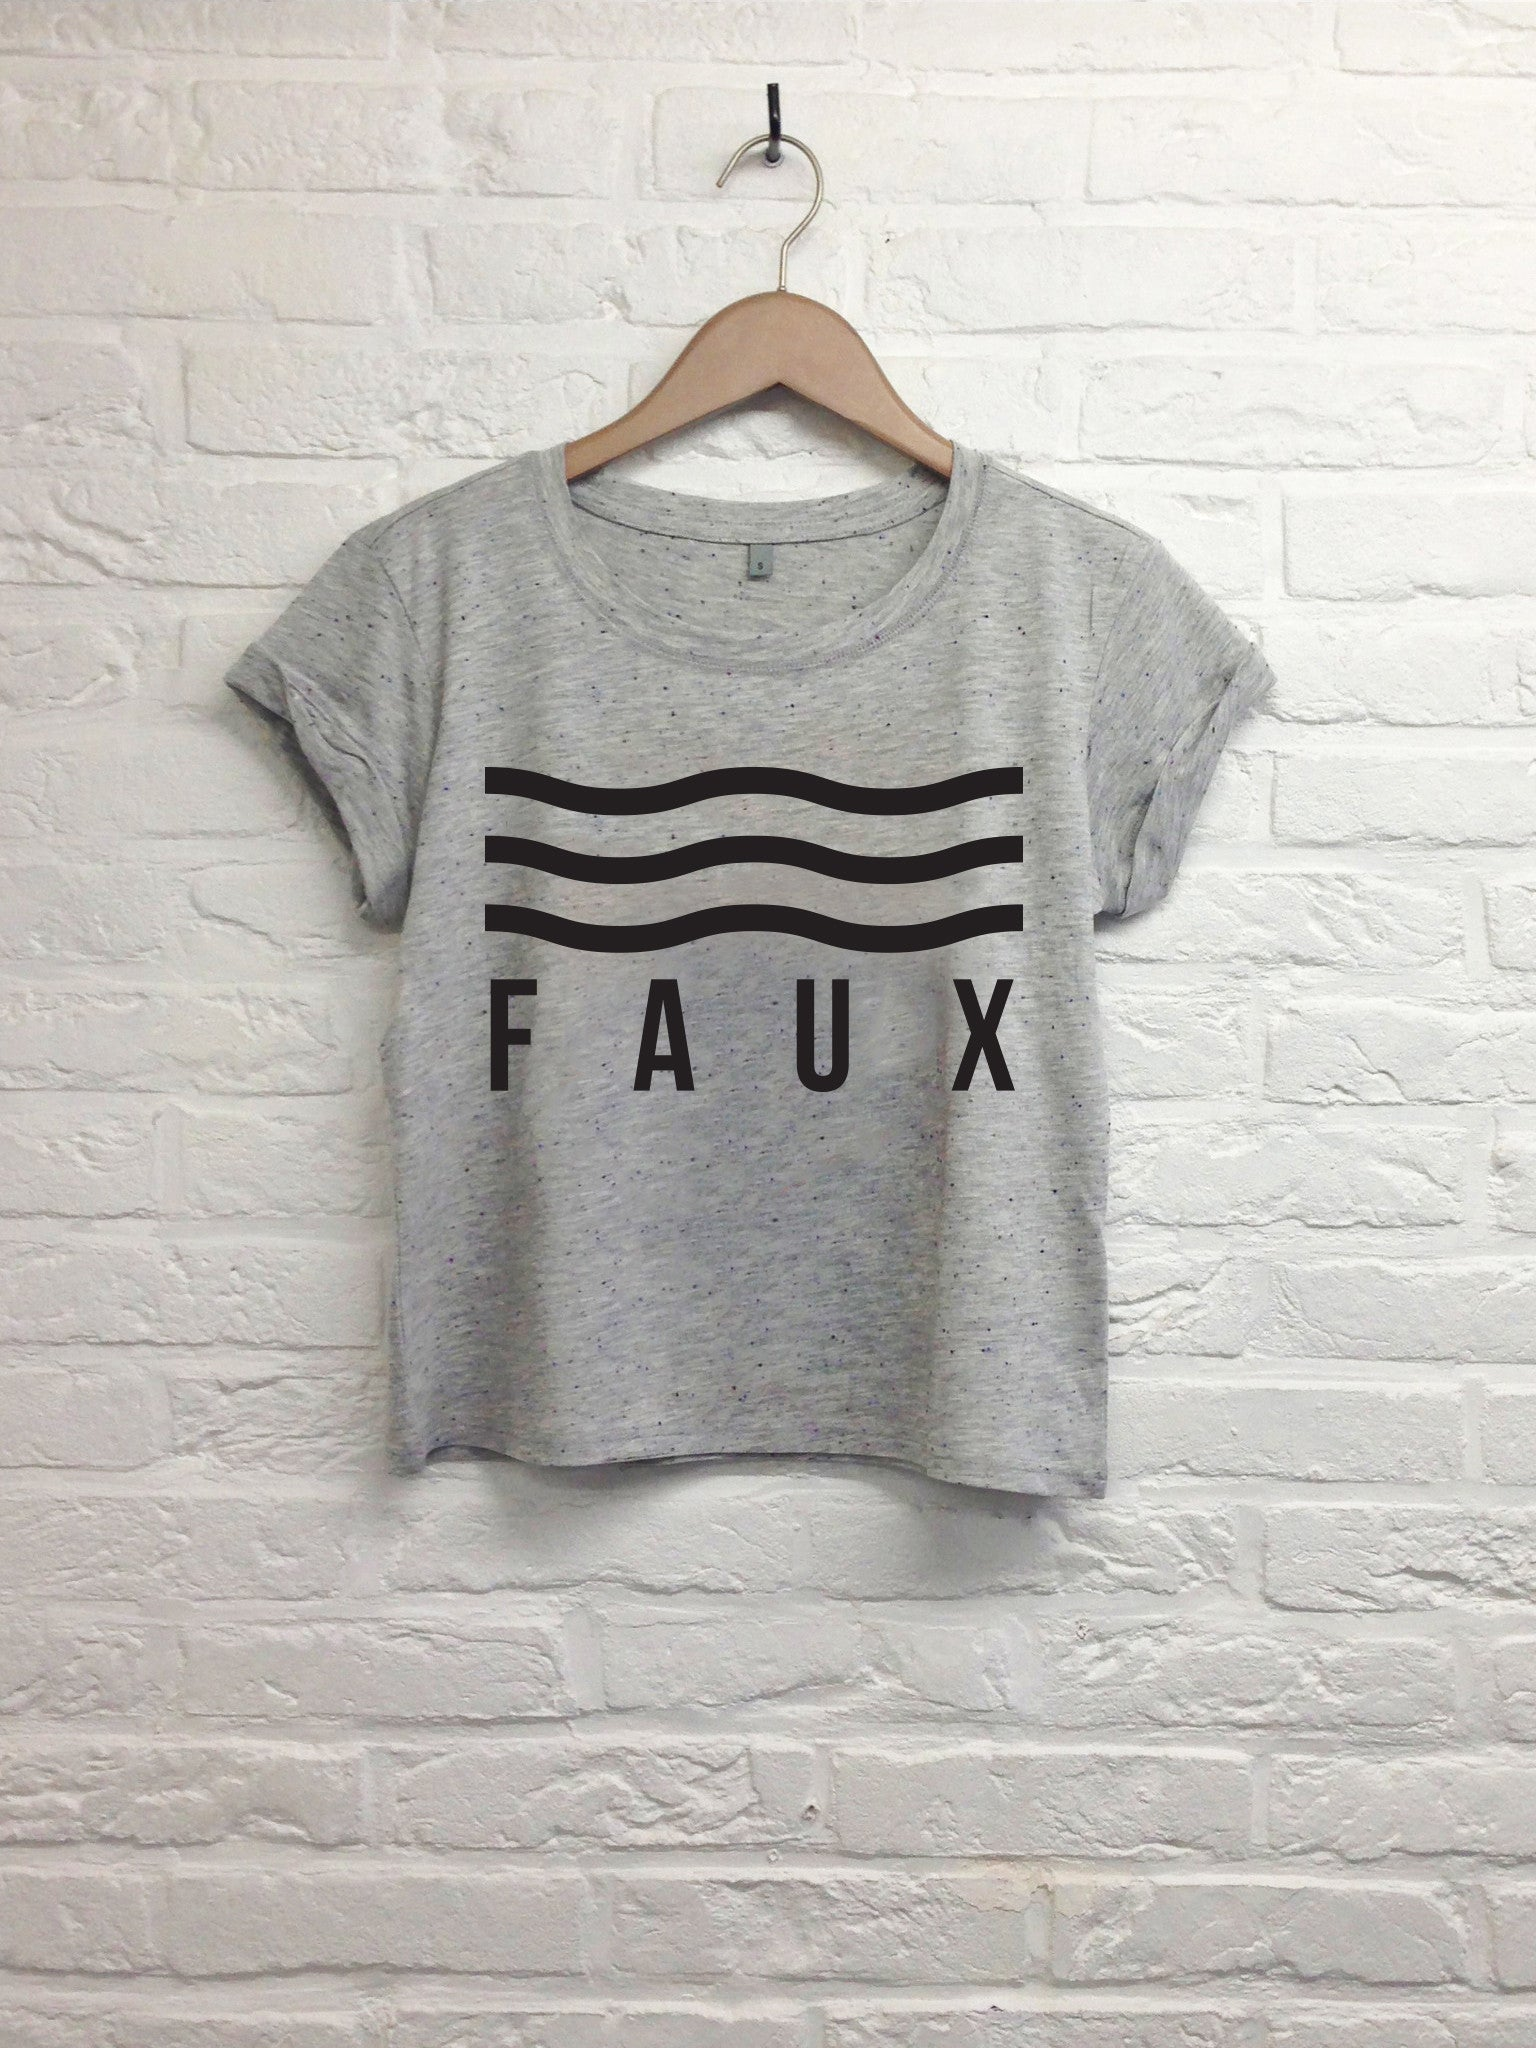 Faux vague - Crop top speckled Grey-T shirt-Atelier Amelot